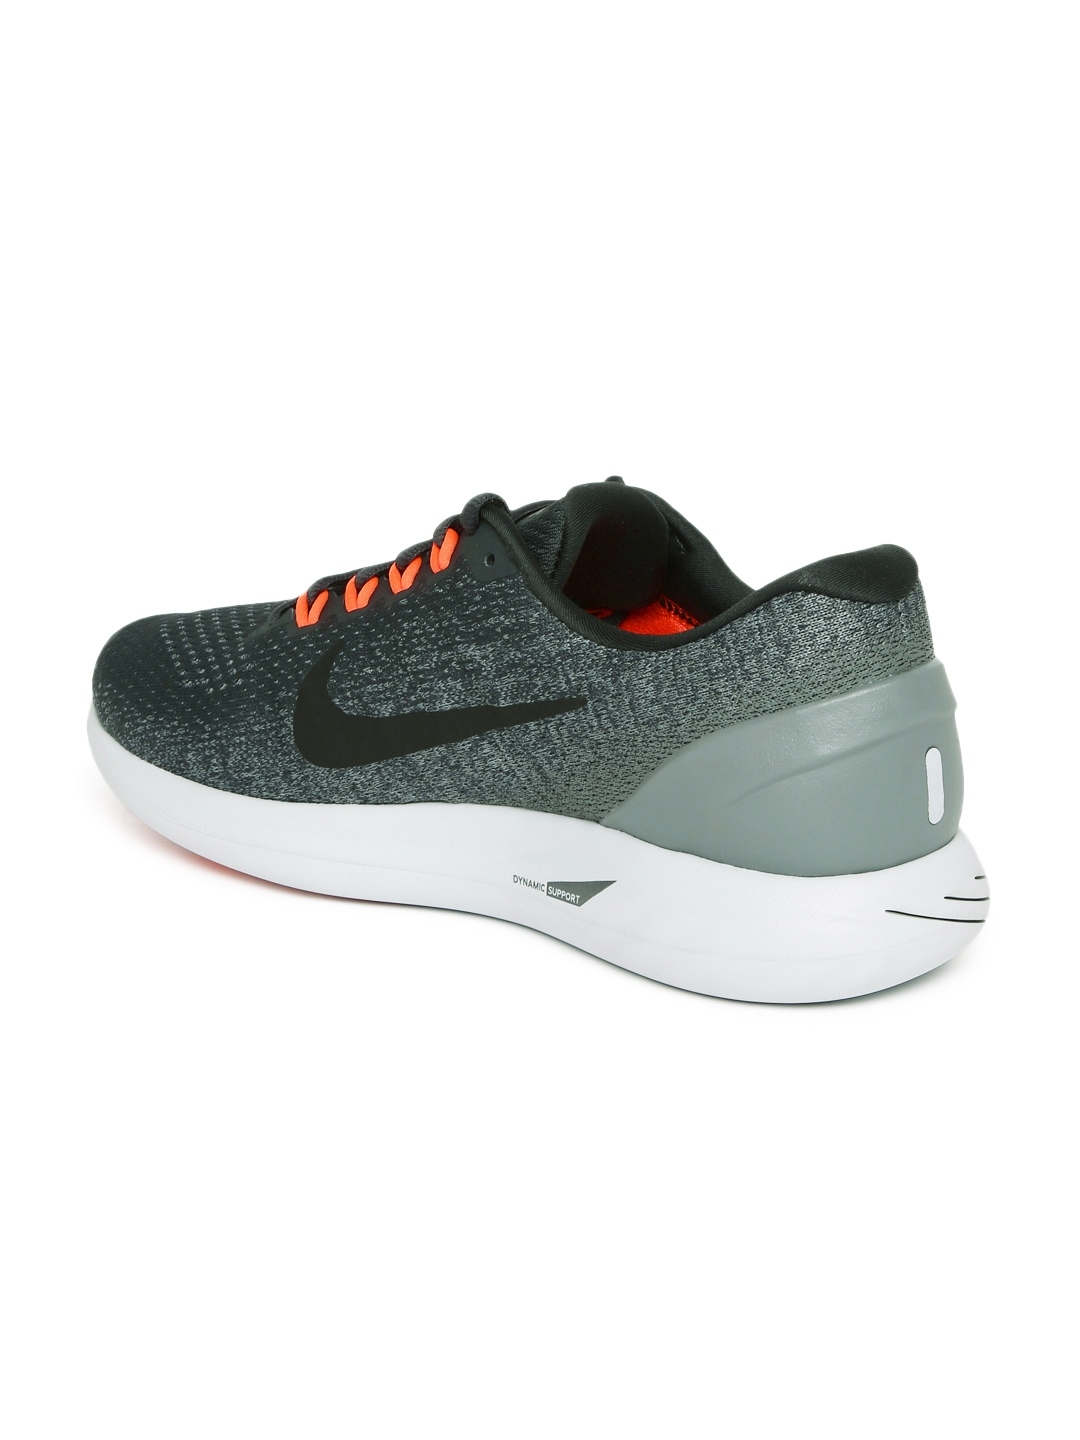 0aeefdddbc Buy Nike Men Charcoal Grey LUNARGLIDE 9 Running Shoes - Sports Shoes ...